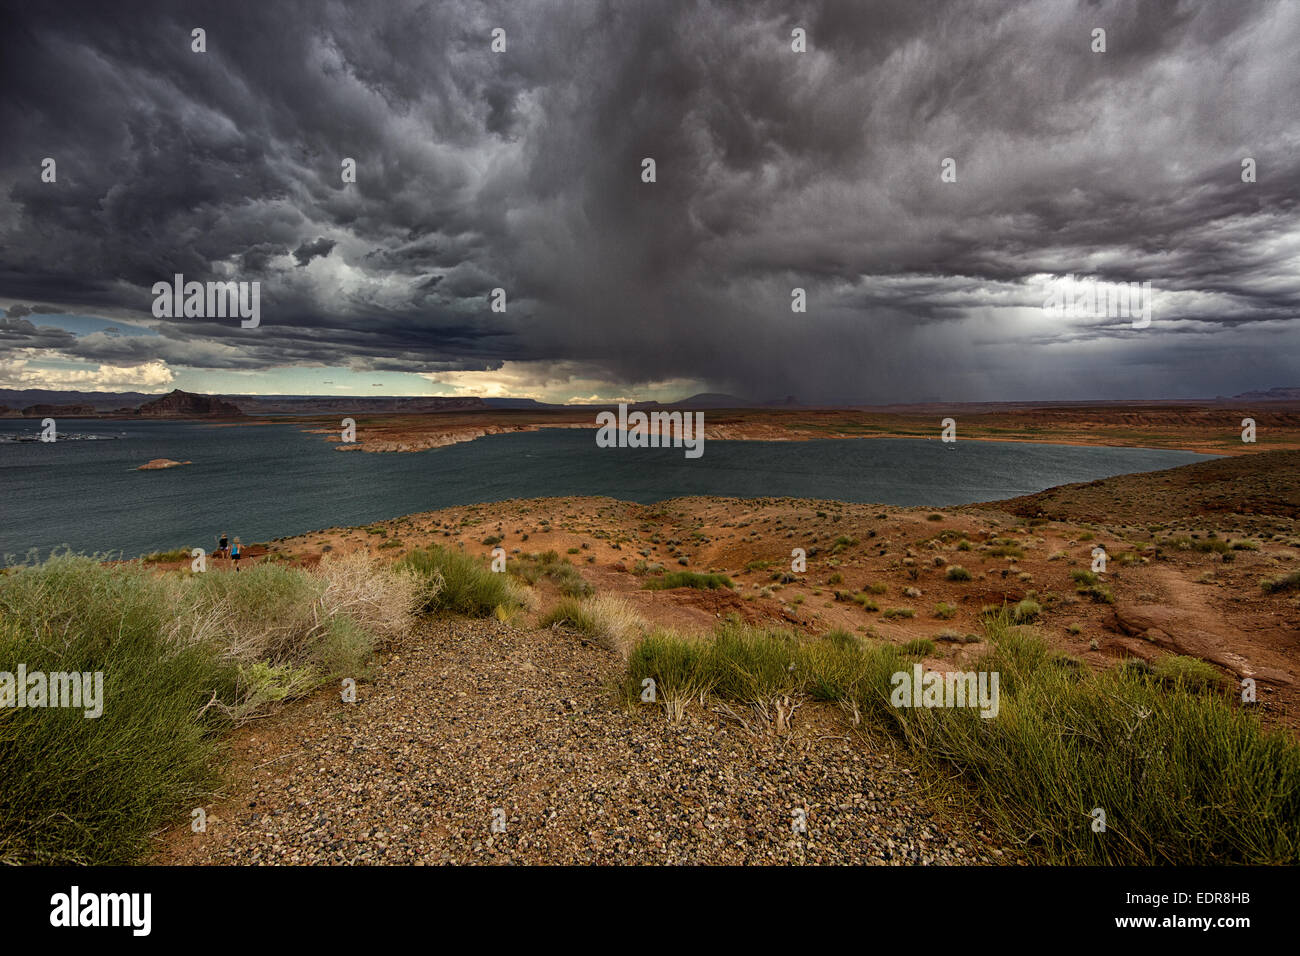 stormy conditions over Mead Lake Stock Photo